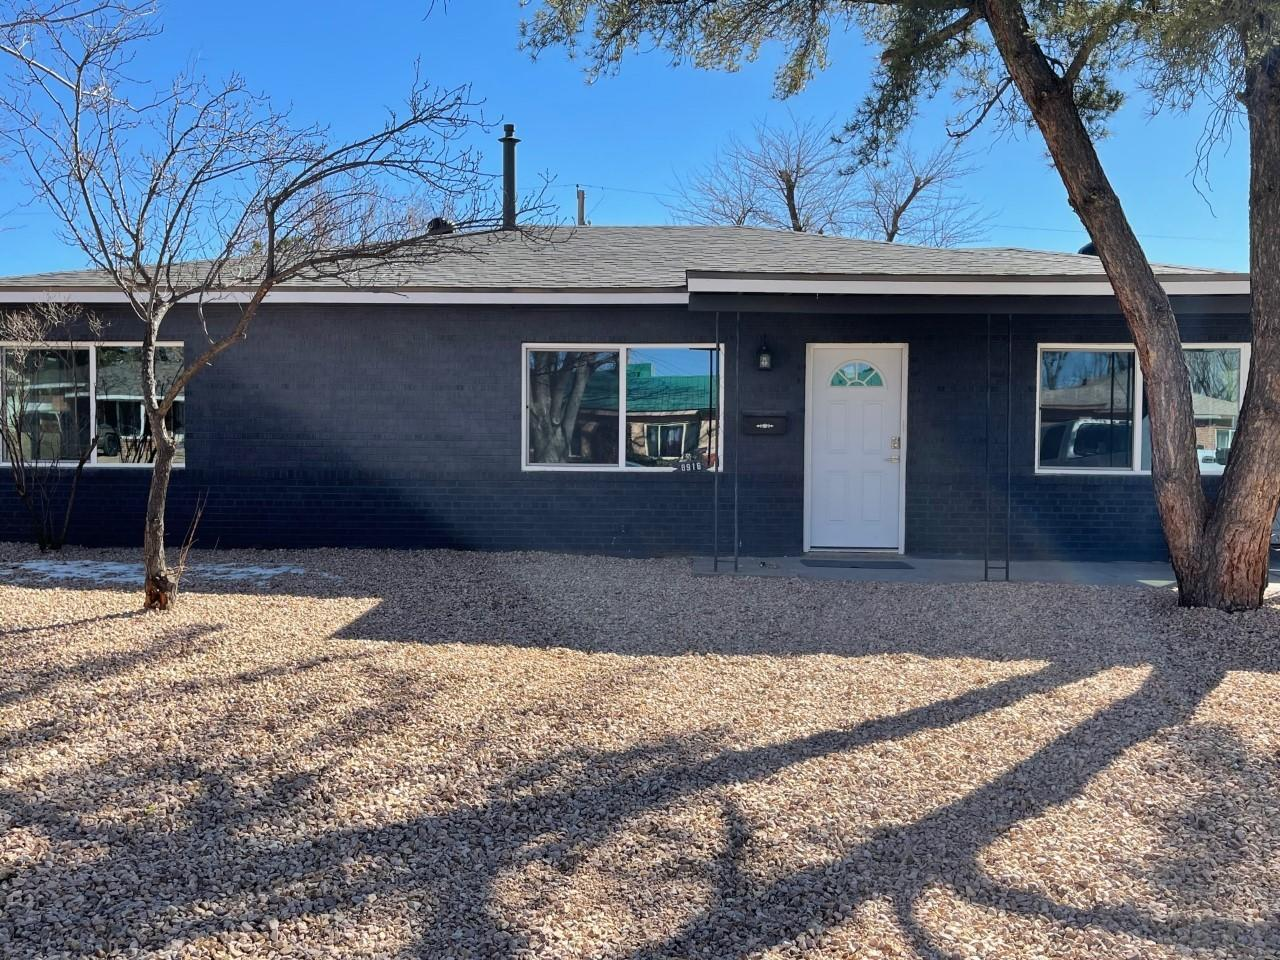 Complete remodel in the NE heights! 3 bedrooms 2 baths with an open floor plan. Home features tile floors throughout (No Carpet) and two living areas. New Roof, New kitchen cabinets, new quartz counter tops, new hot water heater, new stainless steel appliances, new windows, new light fixtures, new plumbing fixtures, new sewer line.  Everything is new,  Show today!